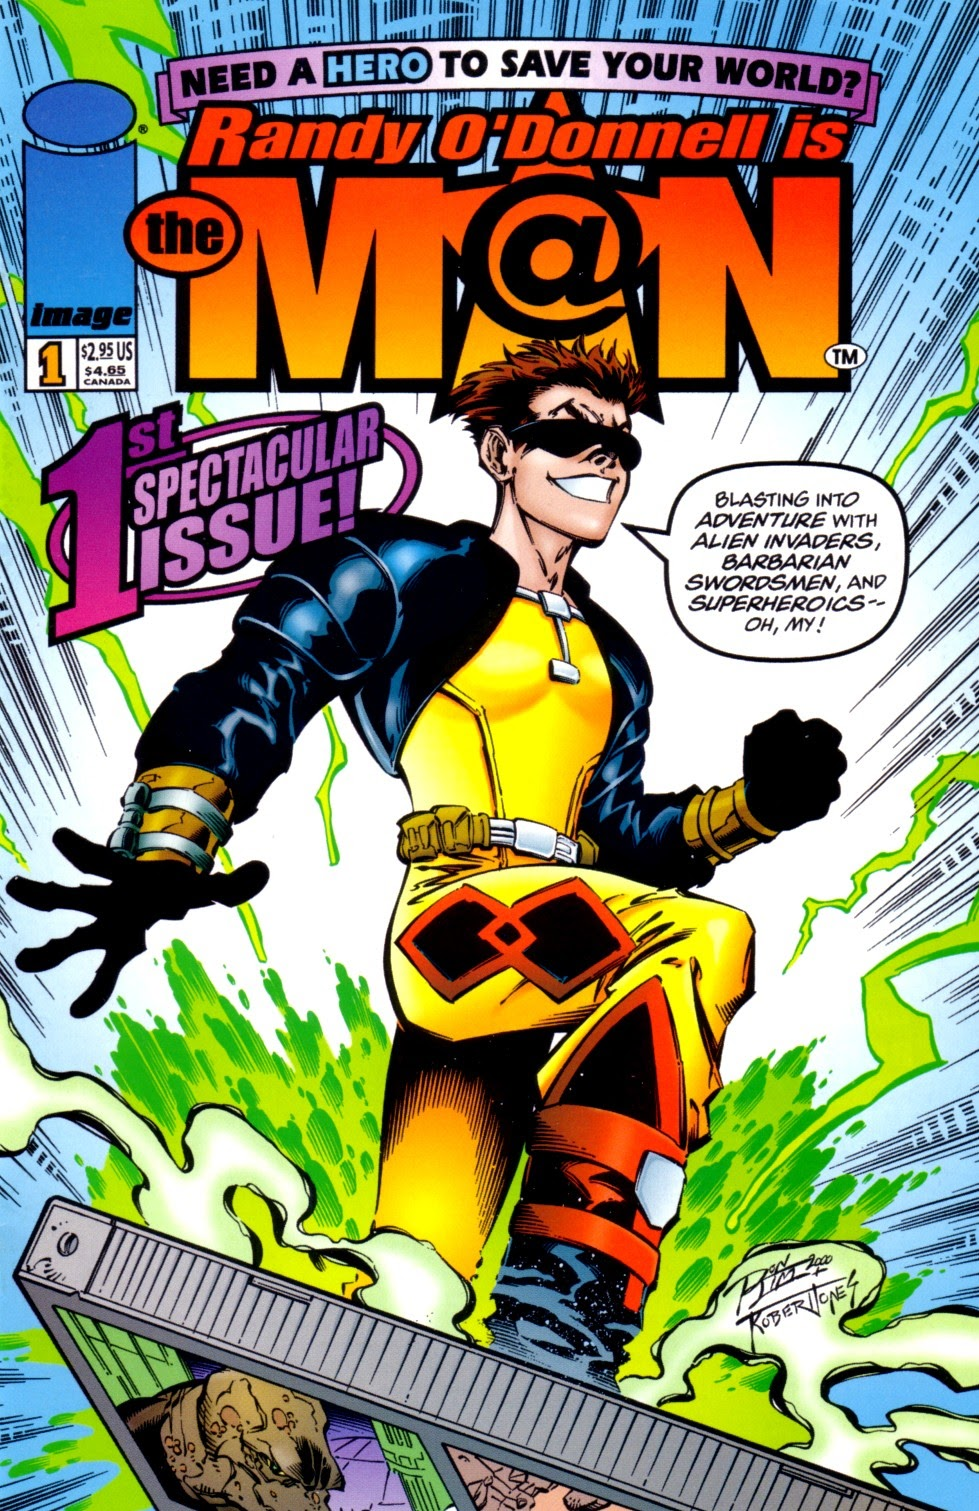 Read online Randy O'Donnell is The M@N comic -  Issue #1 - 1